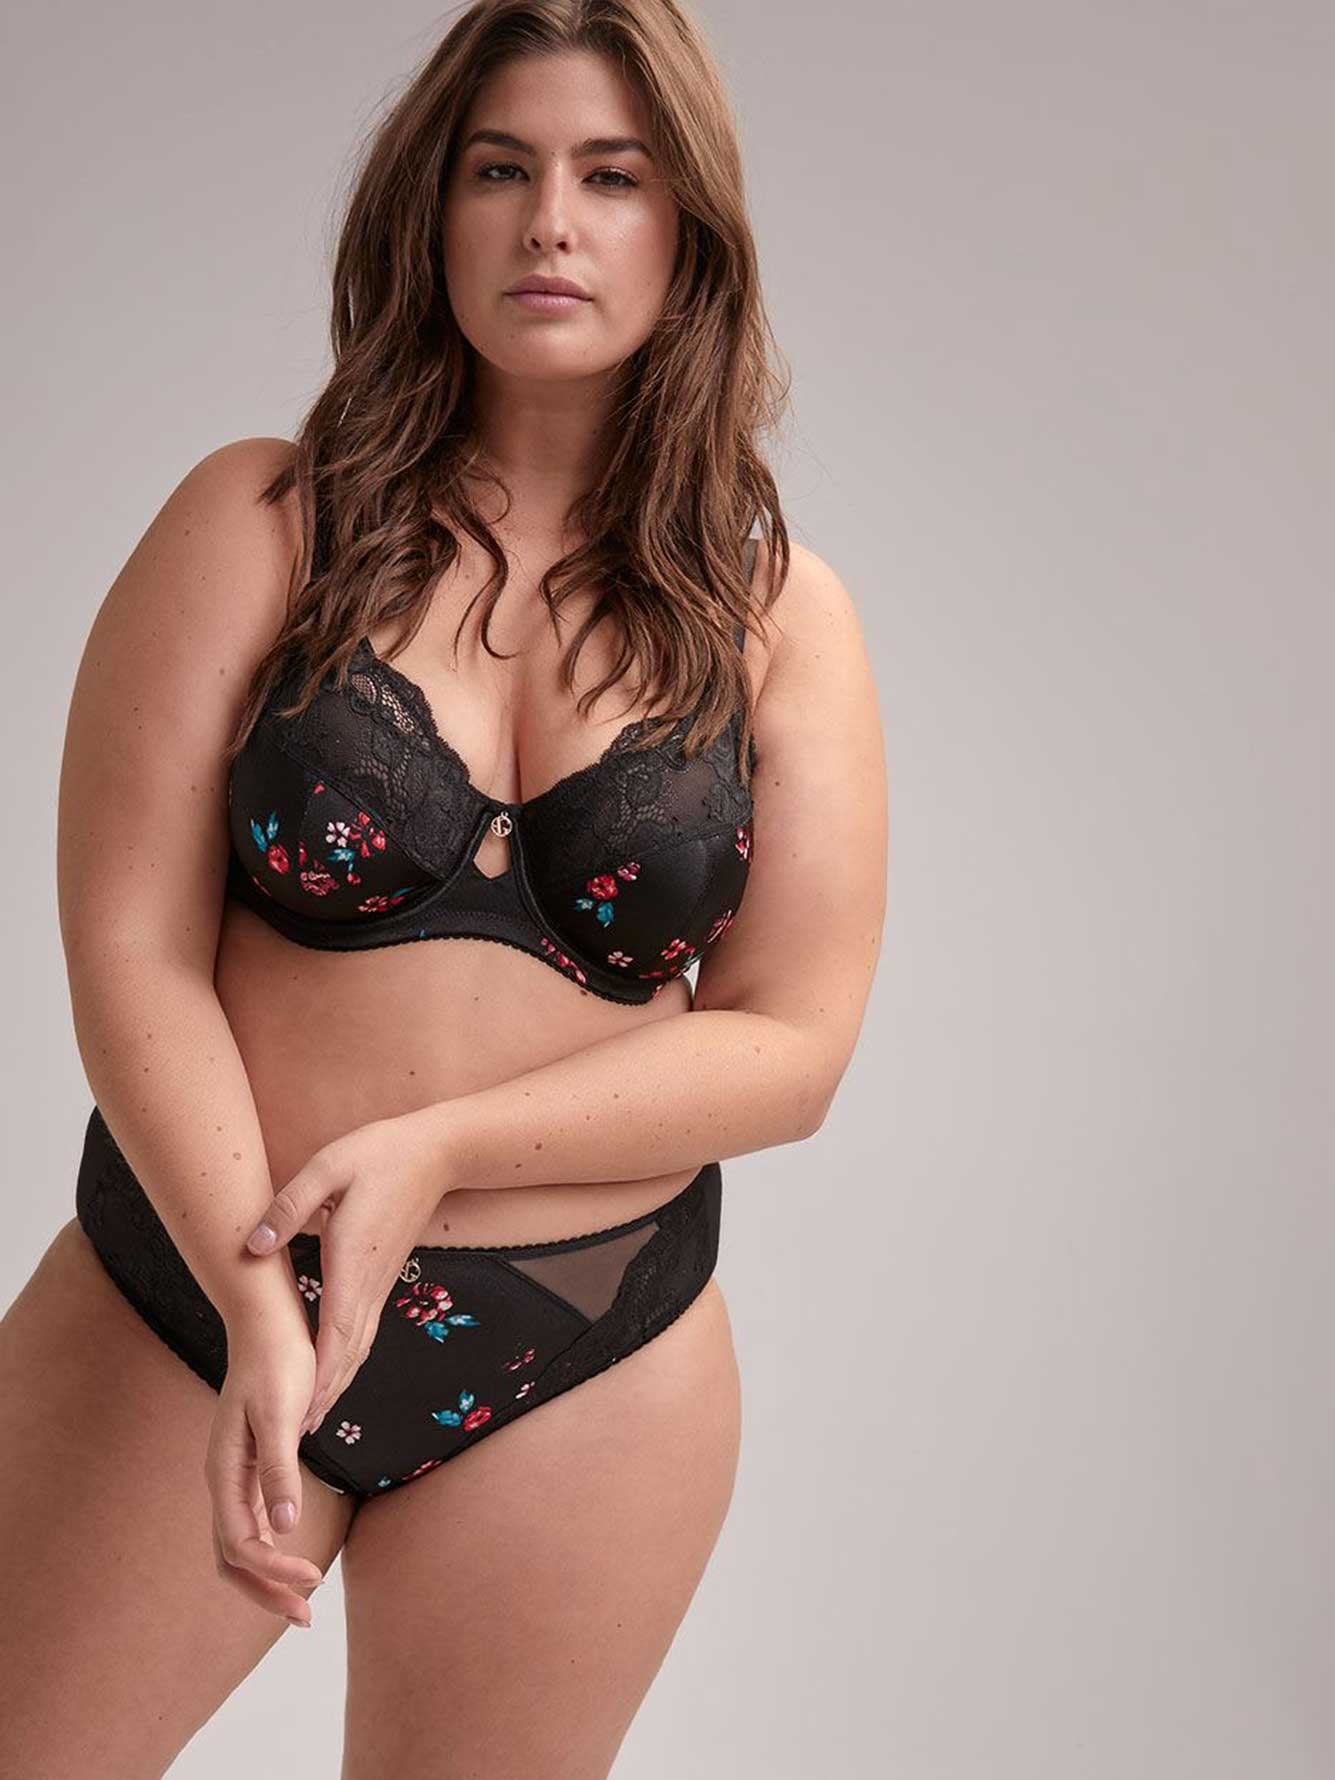 Fatal Attraction Bra with Print and Lace, Sizes G and H - Ashley Graham